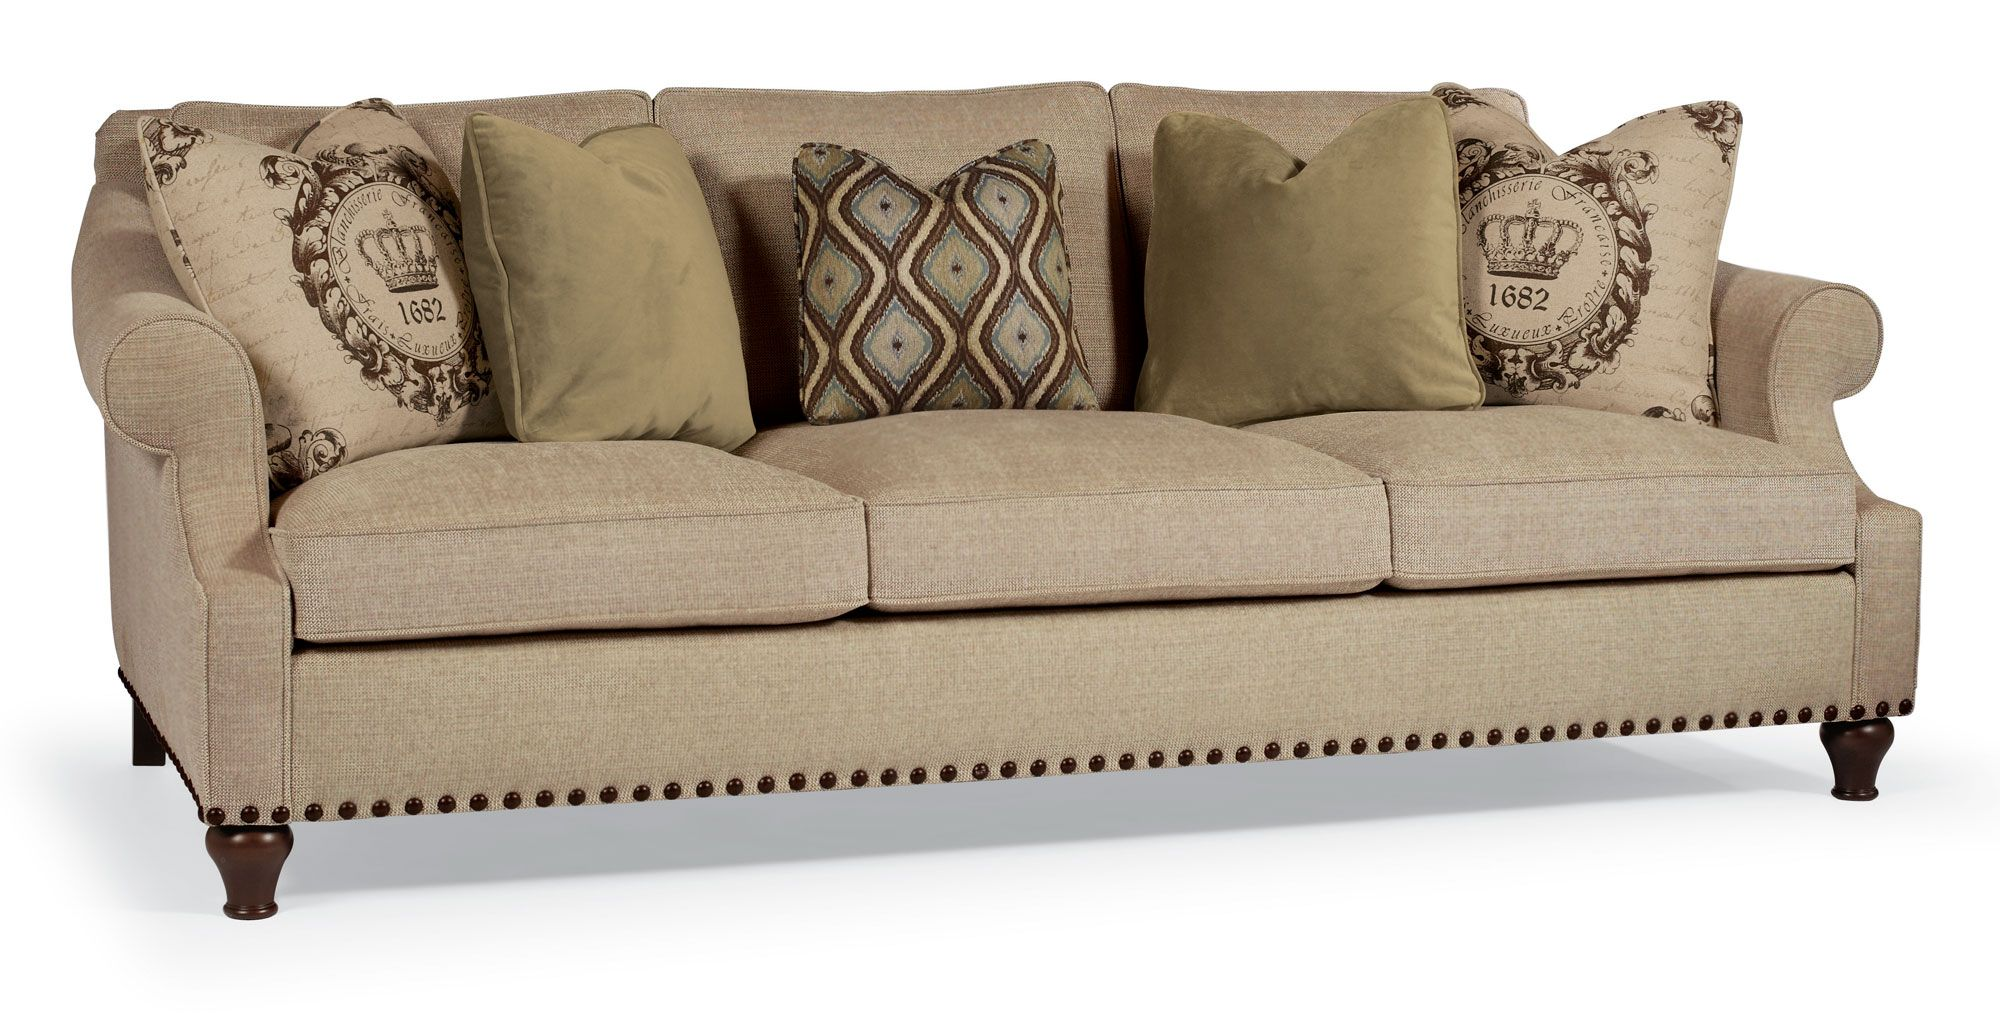 B3947 harrison sofa bernhardt w 95 d 44 h 35 sh 185 ah for Cheap sectional sofas pittsburgh